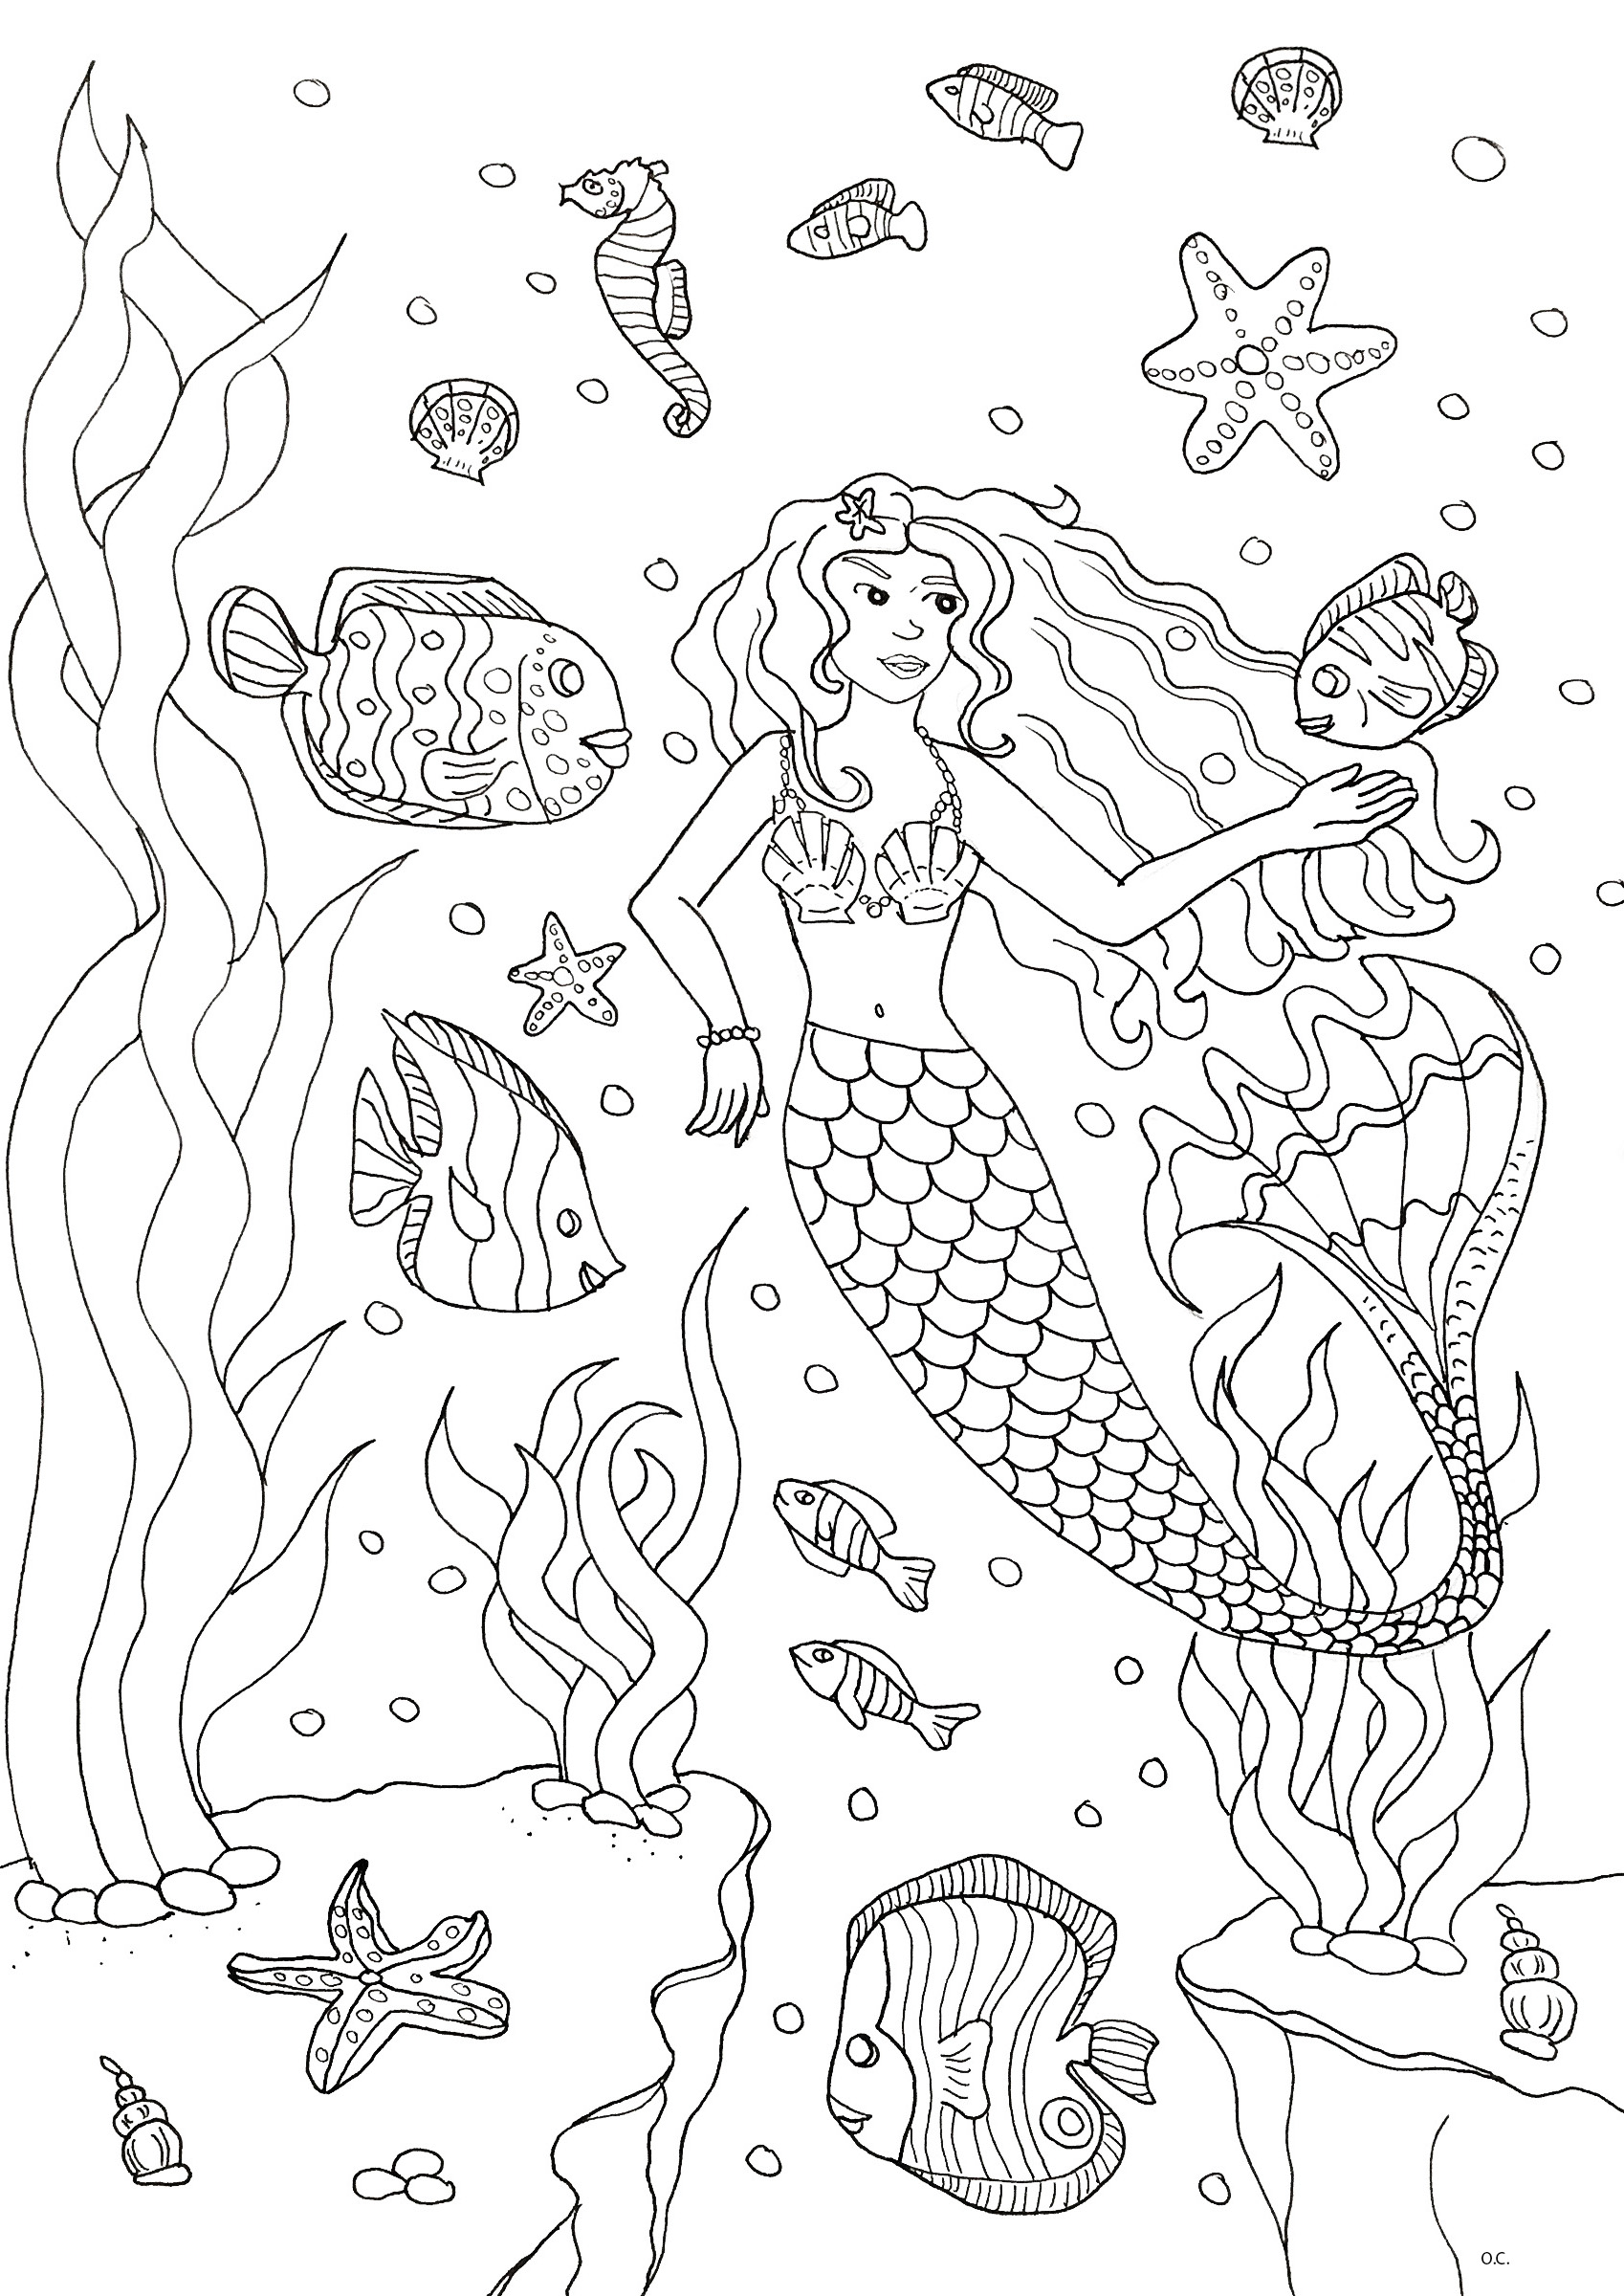 Coloring page of a cute mermaid with fishes